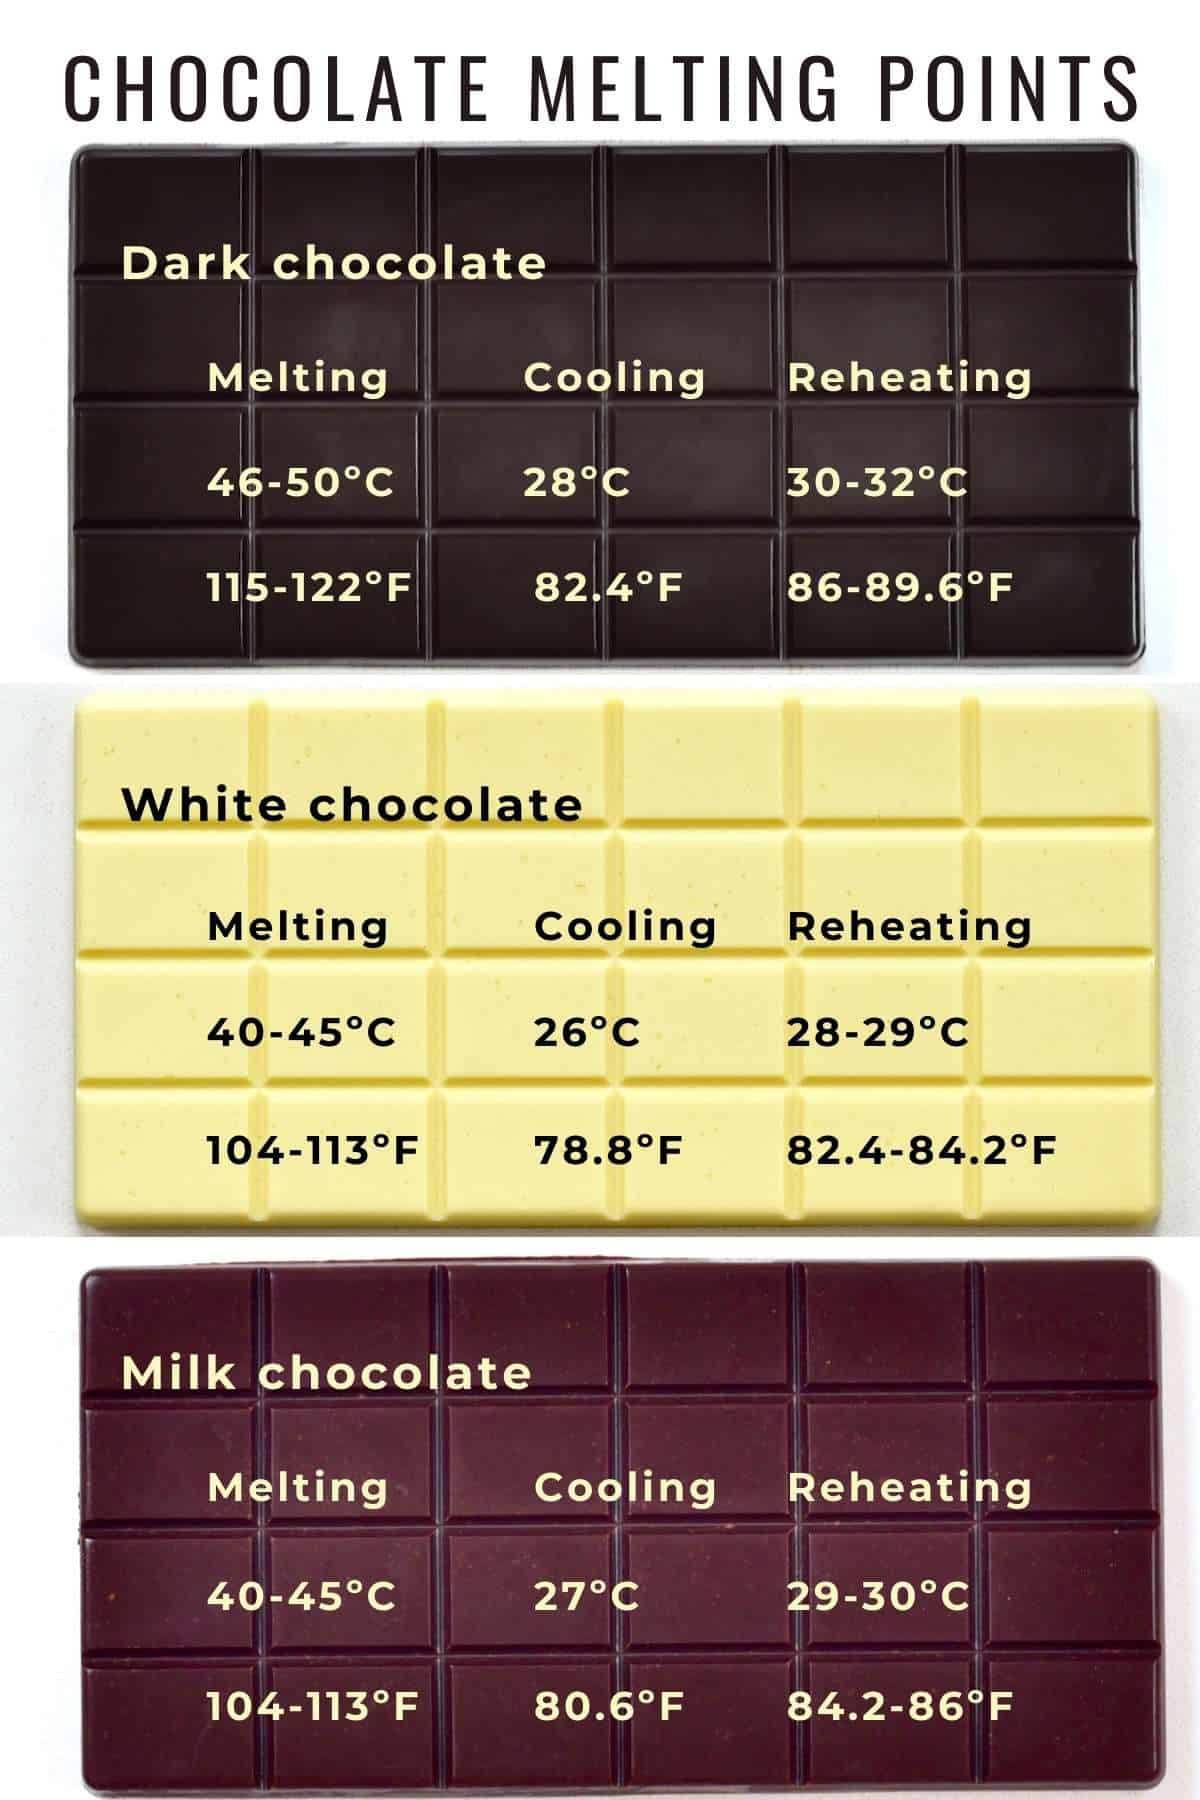 Chocolate Melting Points